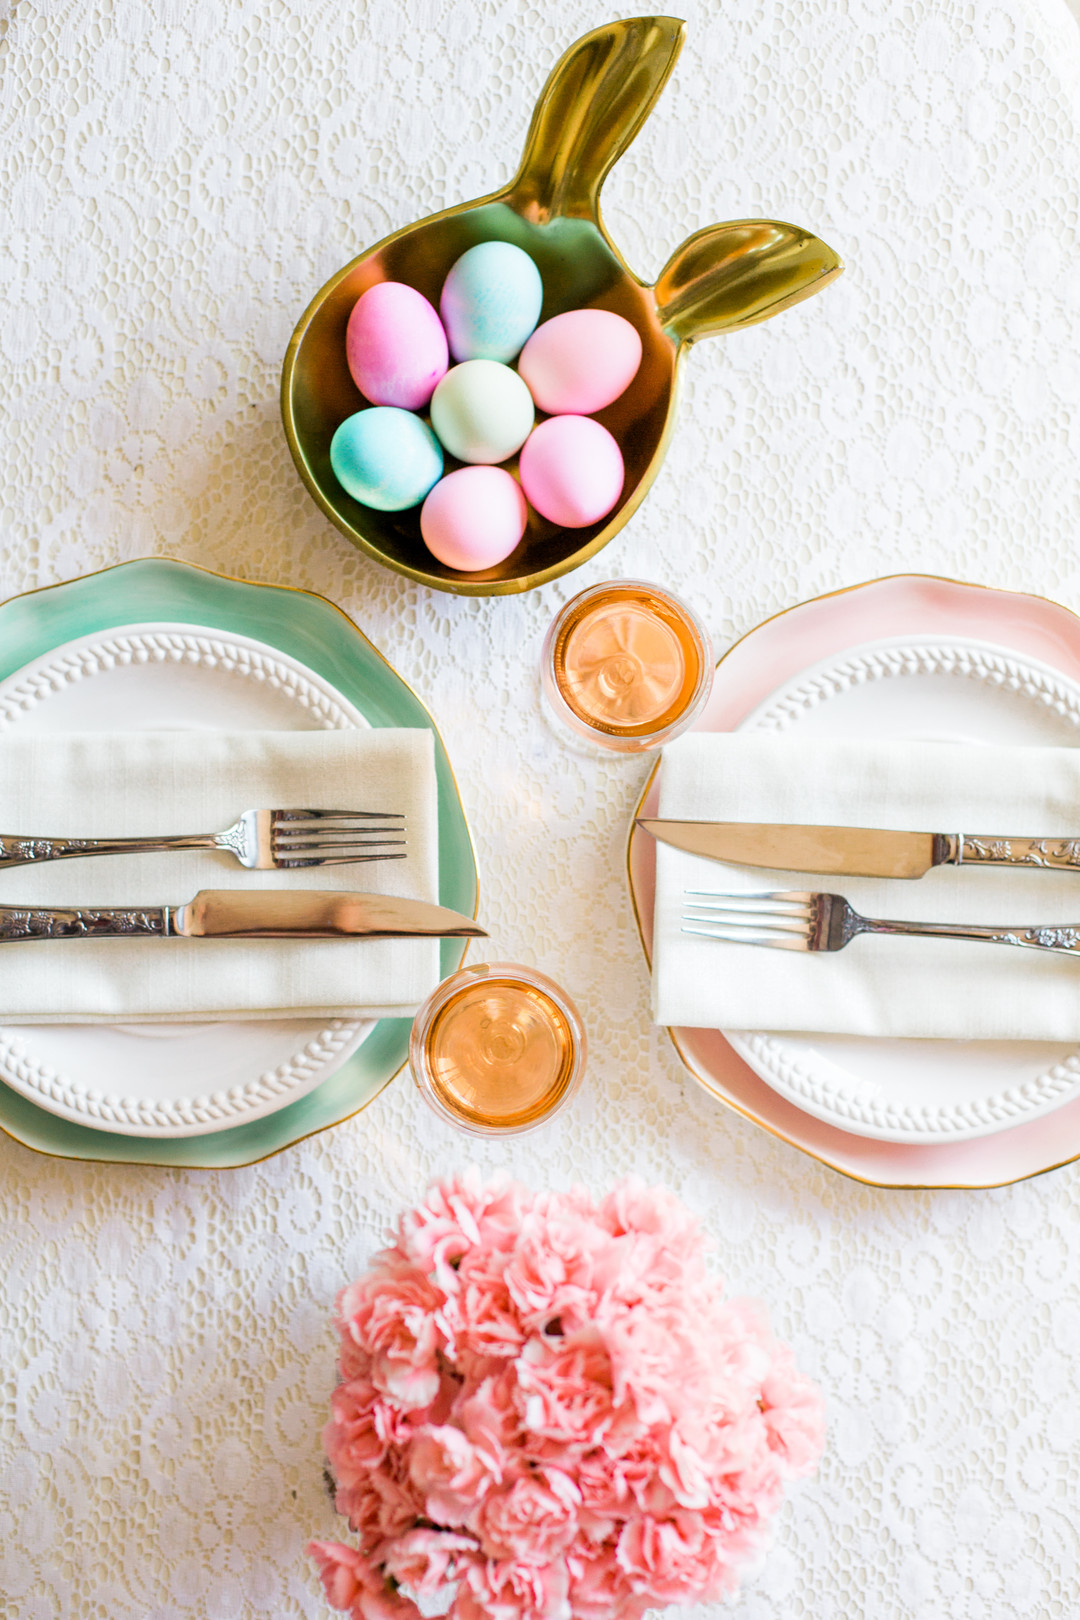 Staal_KristinaStaalPhotography_KristinaStaalPhotographyEasterTablescape20165_big Easy Entertaining: Easter Brunch Inspiration for Two